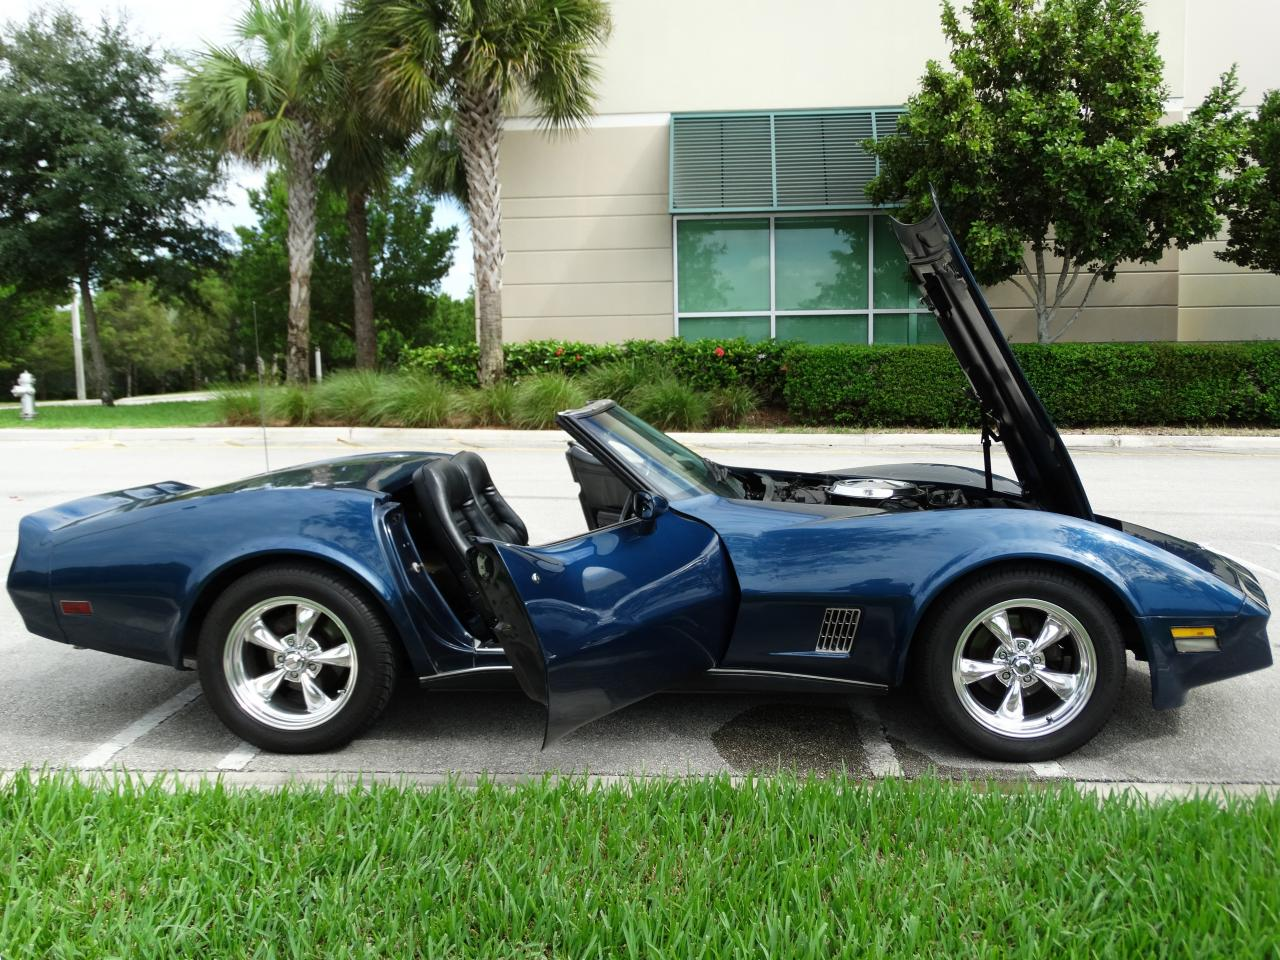 Chevrolet Corvette 5.7 1981 photo - 6